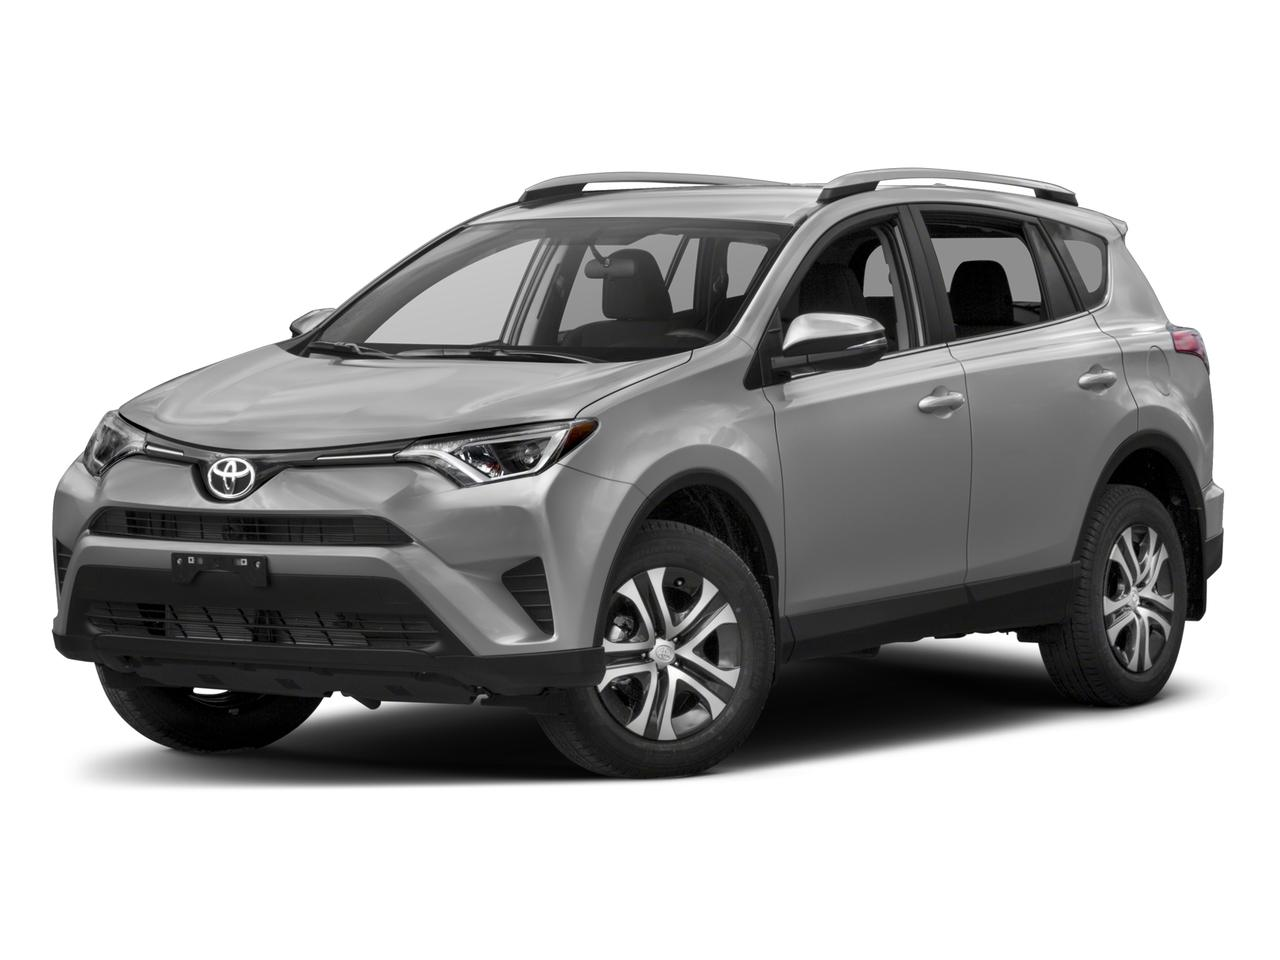 2017 Toyota RAV4 Vehicle Photo in Johnson City, TN 37601